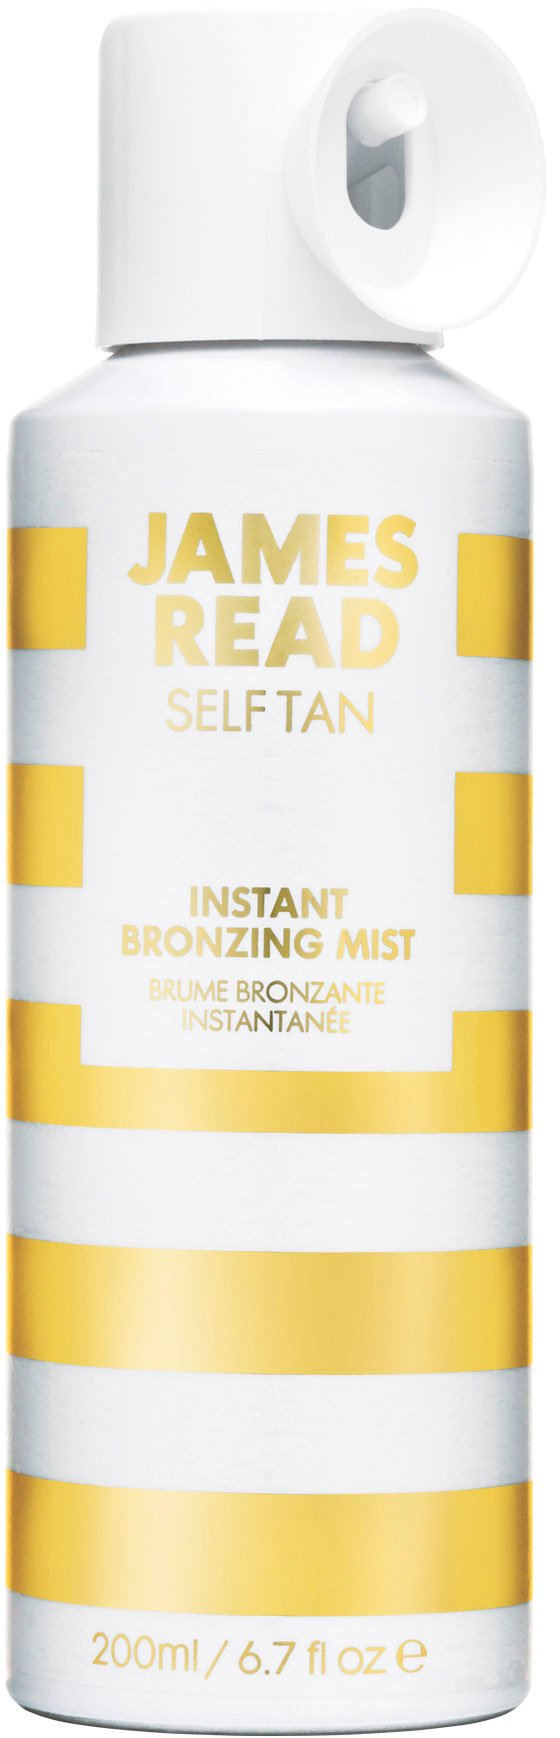 James Read - Instant Bronzing Mist Face & Body 200 ml